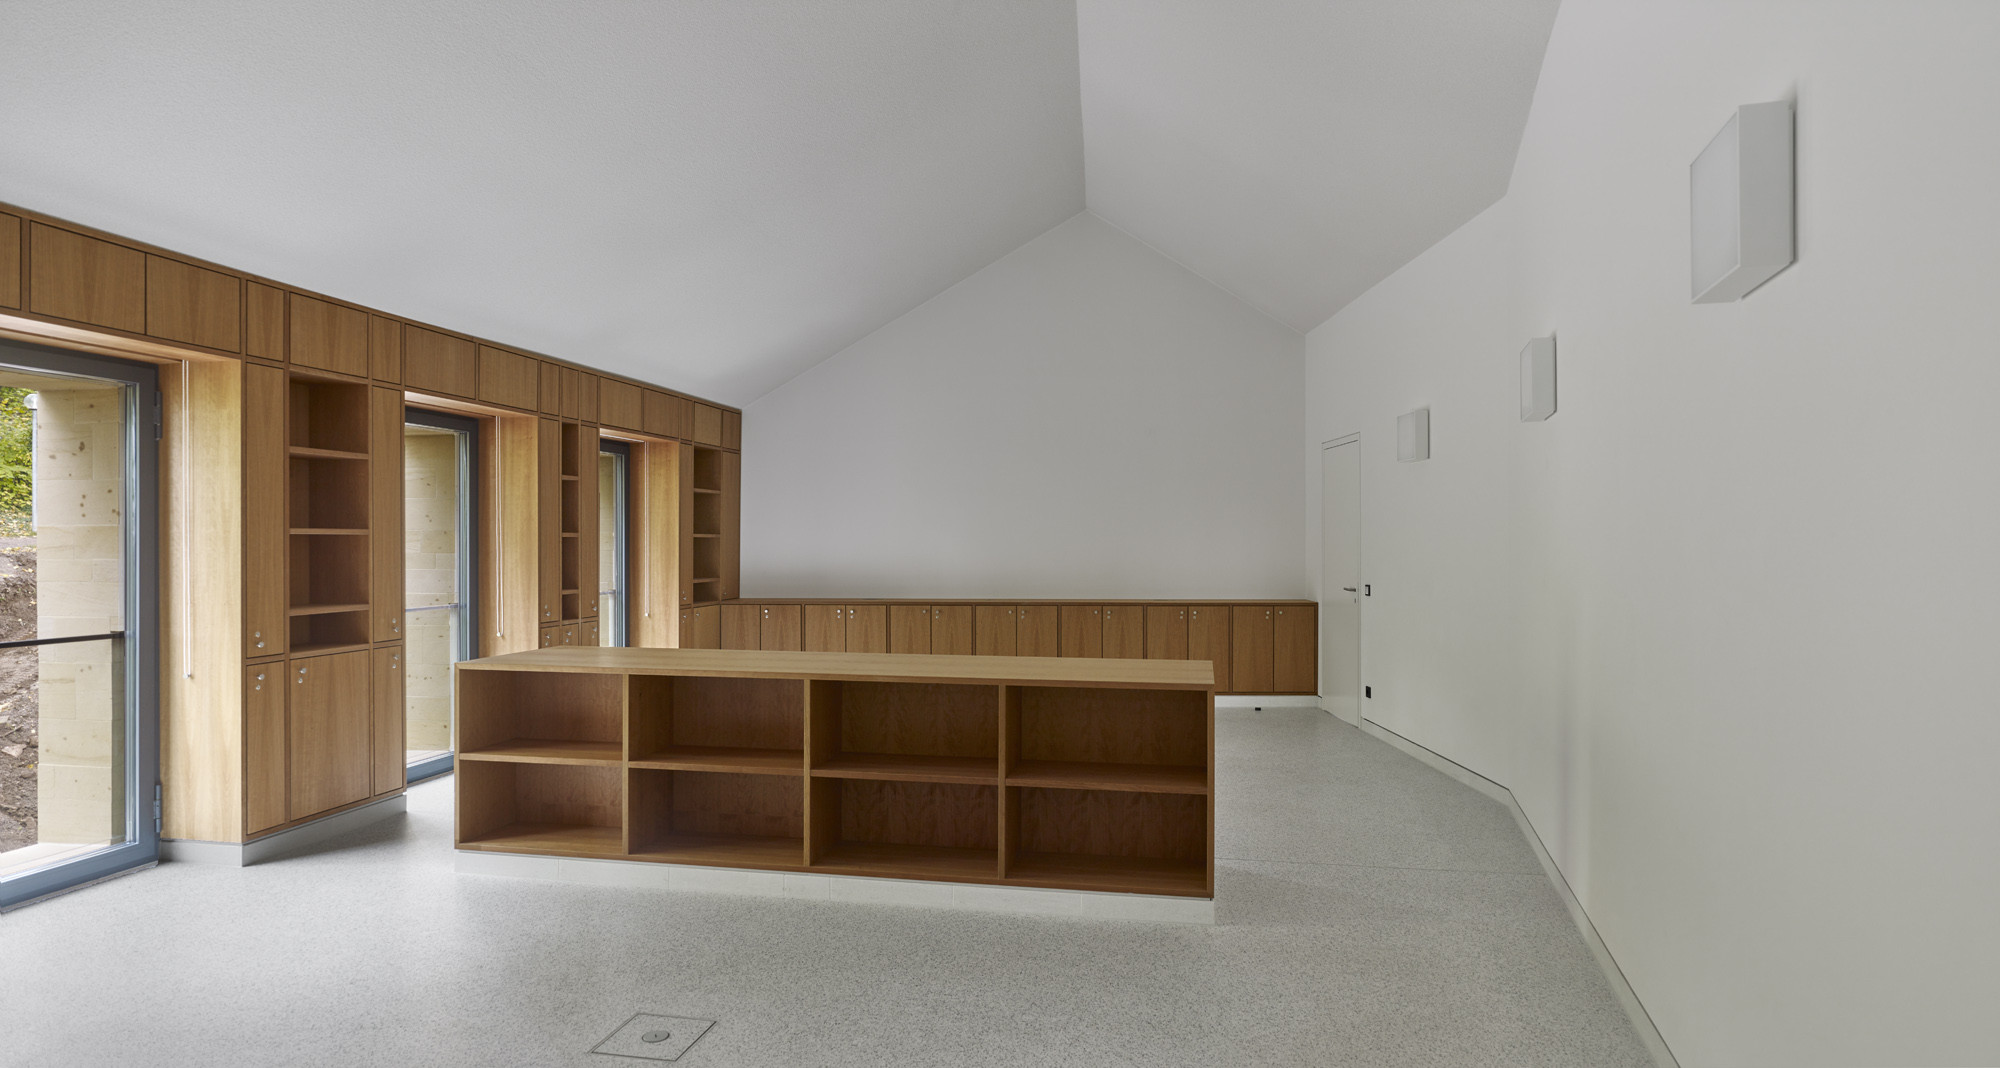 hambach castle entrance building / max dudler | archdaily